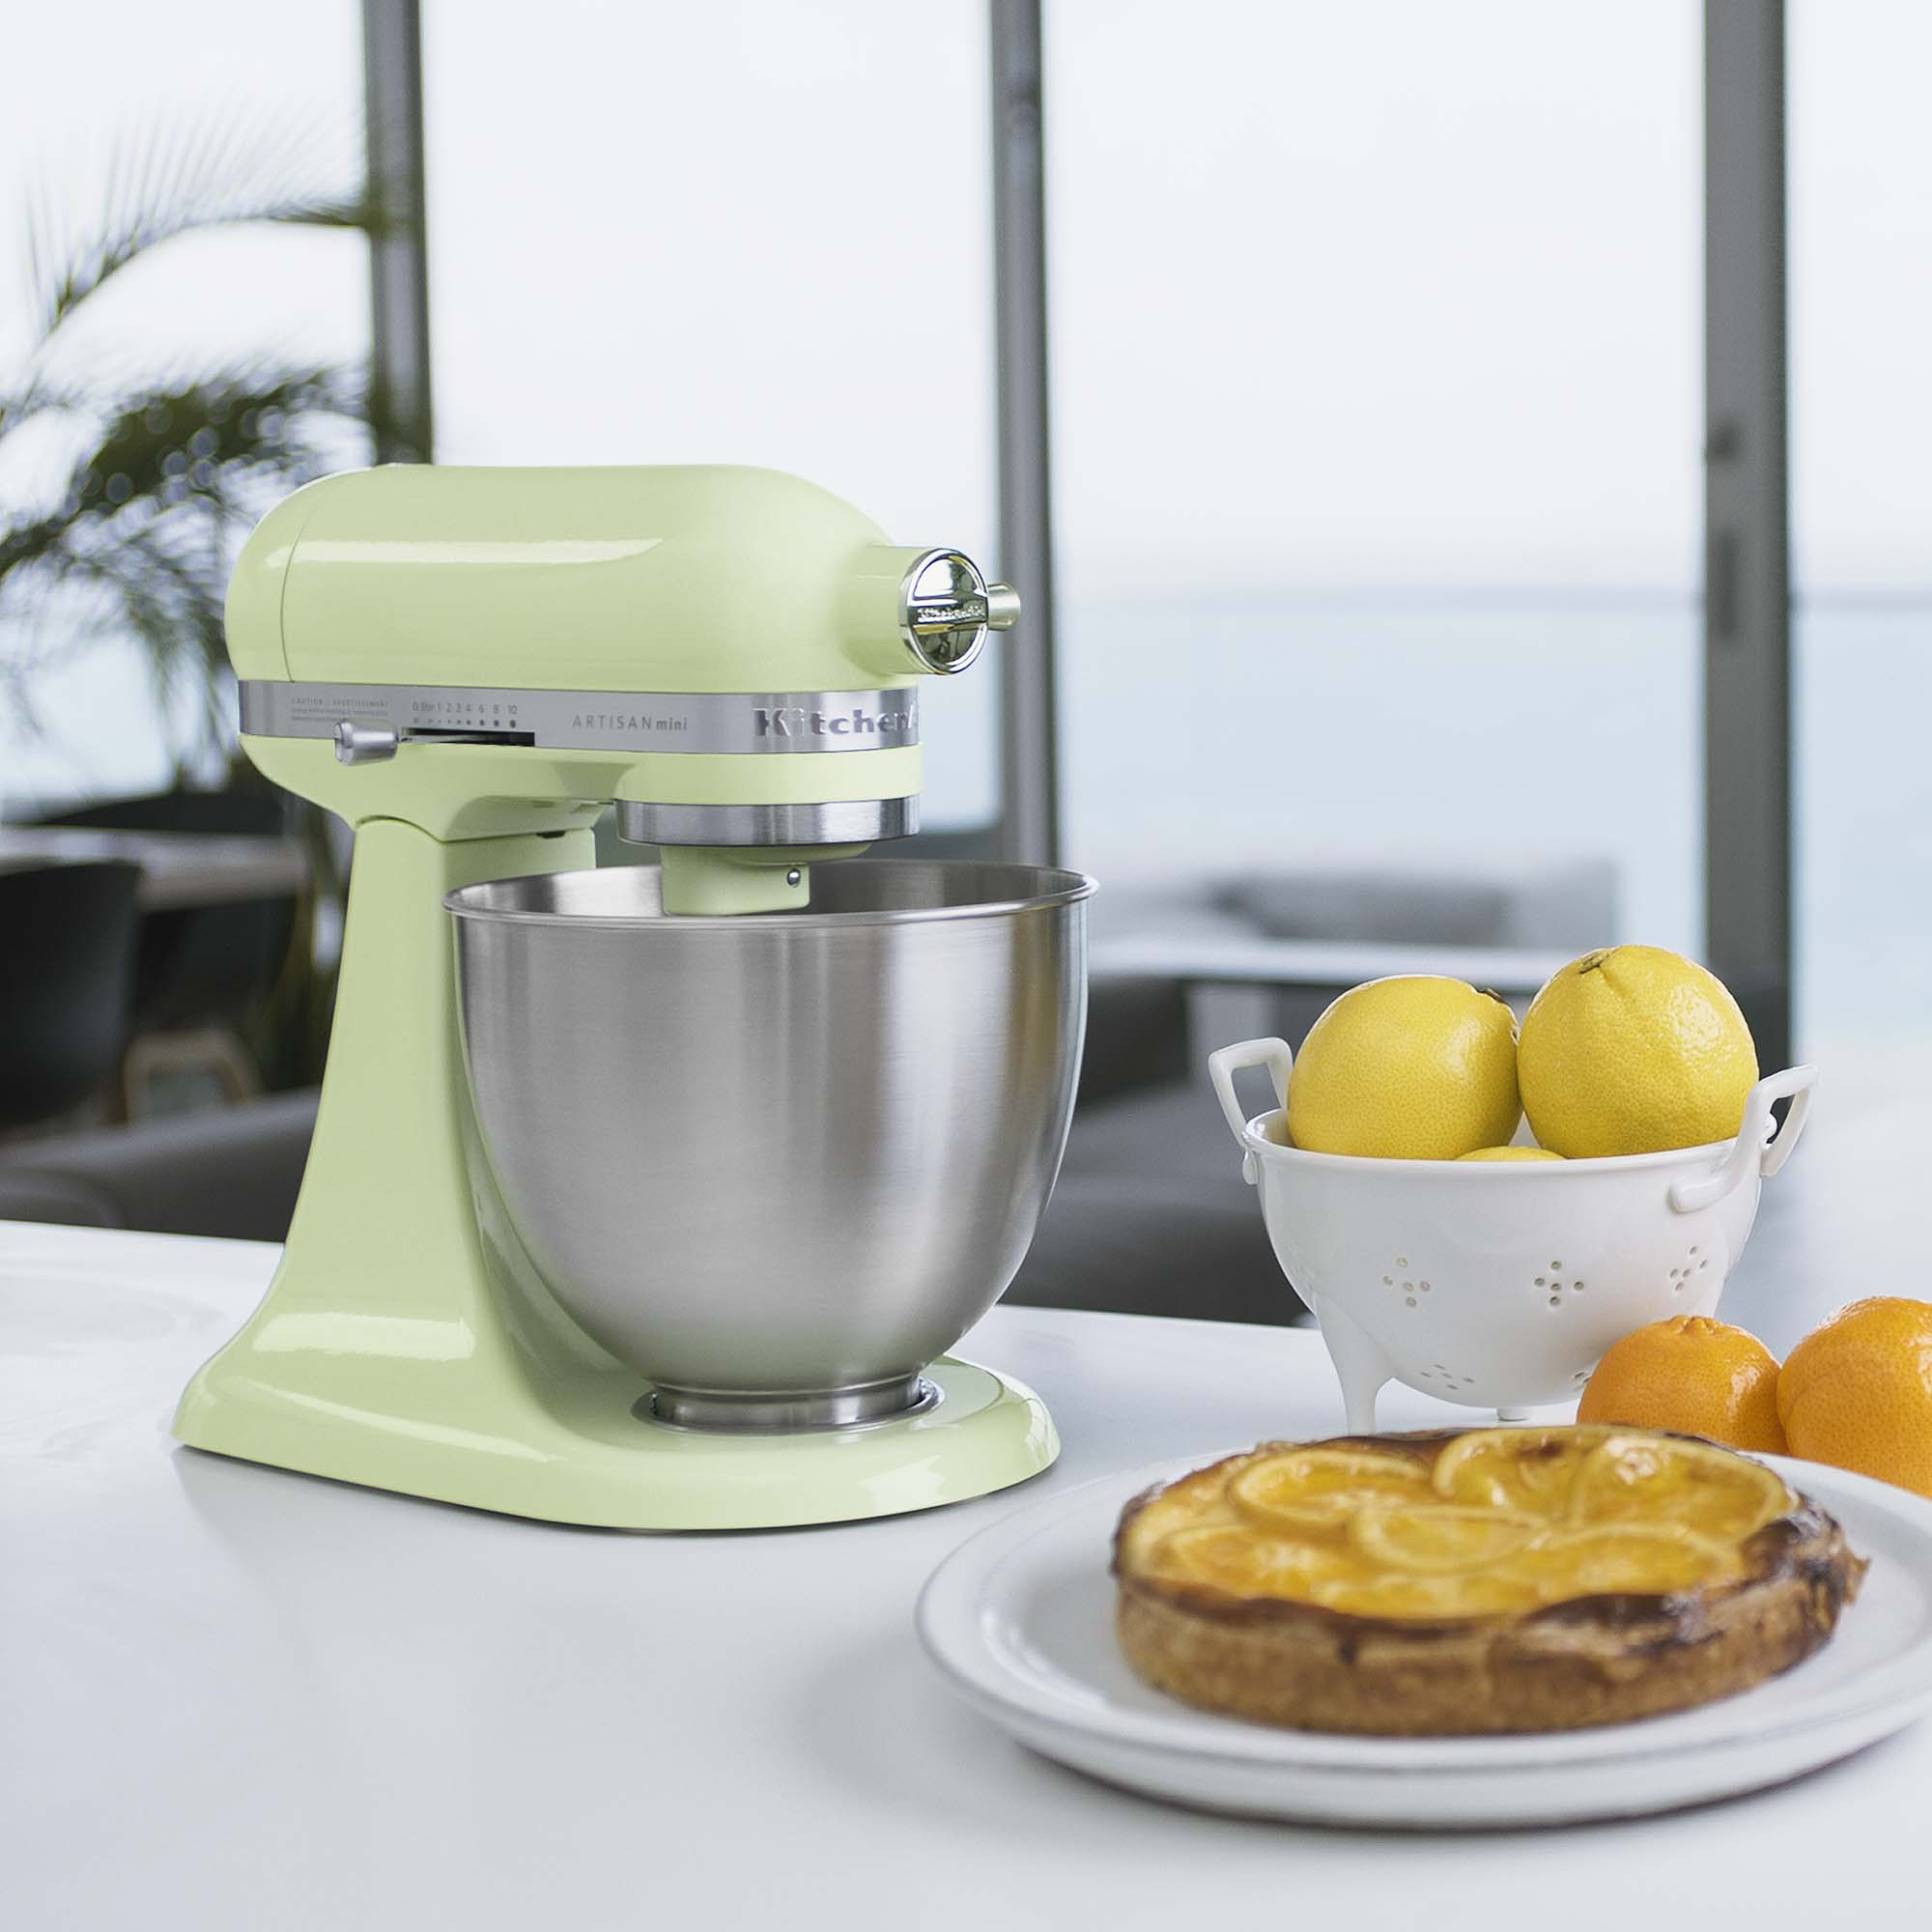 KitchenAid-Refurbished-Artisan-Mini-3-5-Quart-Tilt-Head-Stand-Mixer-RKSM33XX thumbnail 18